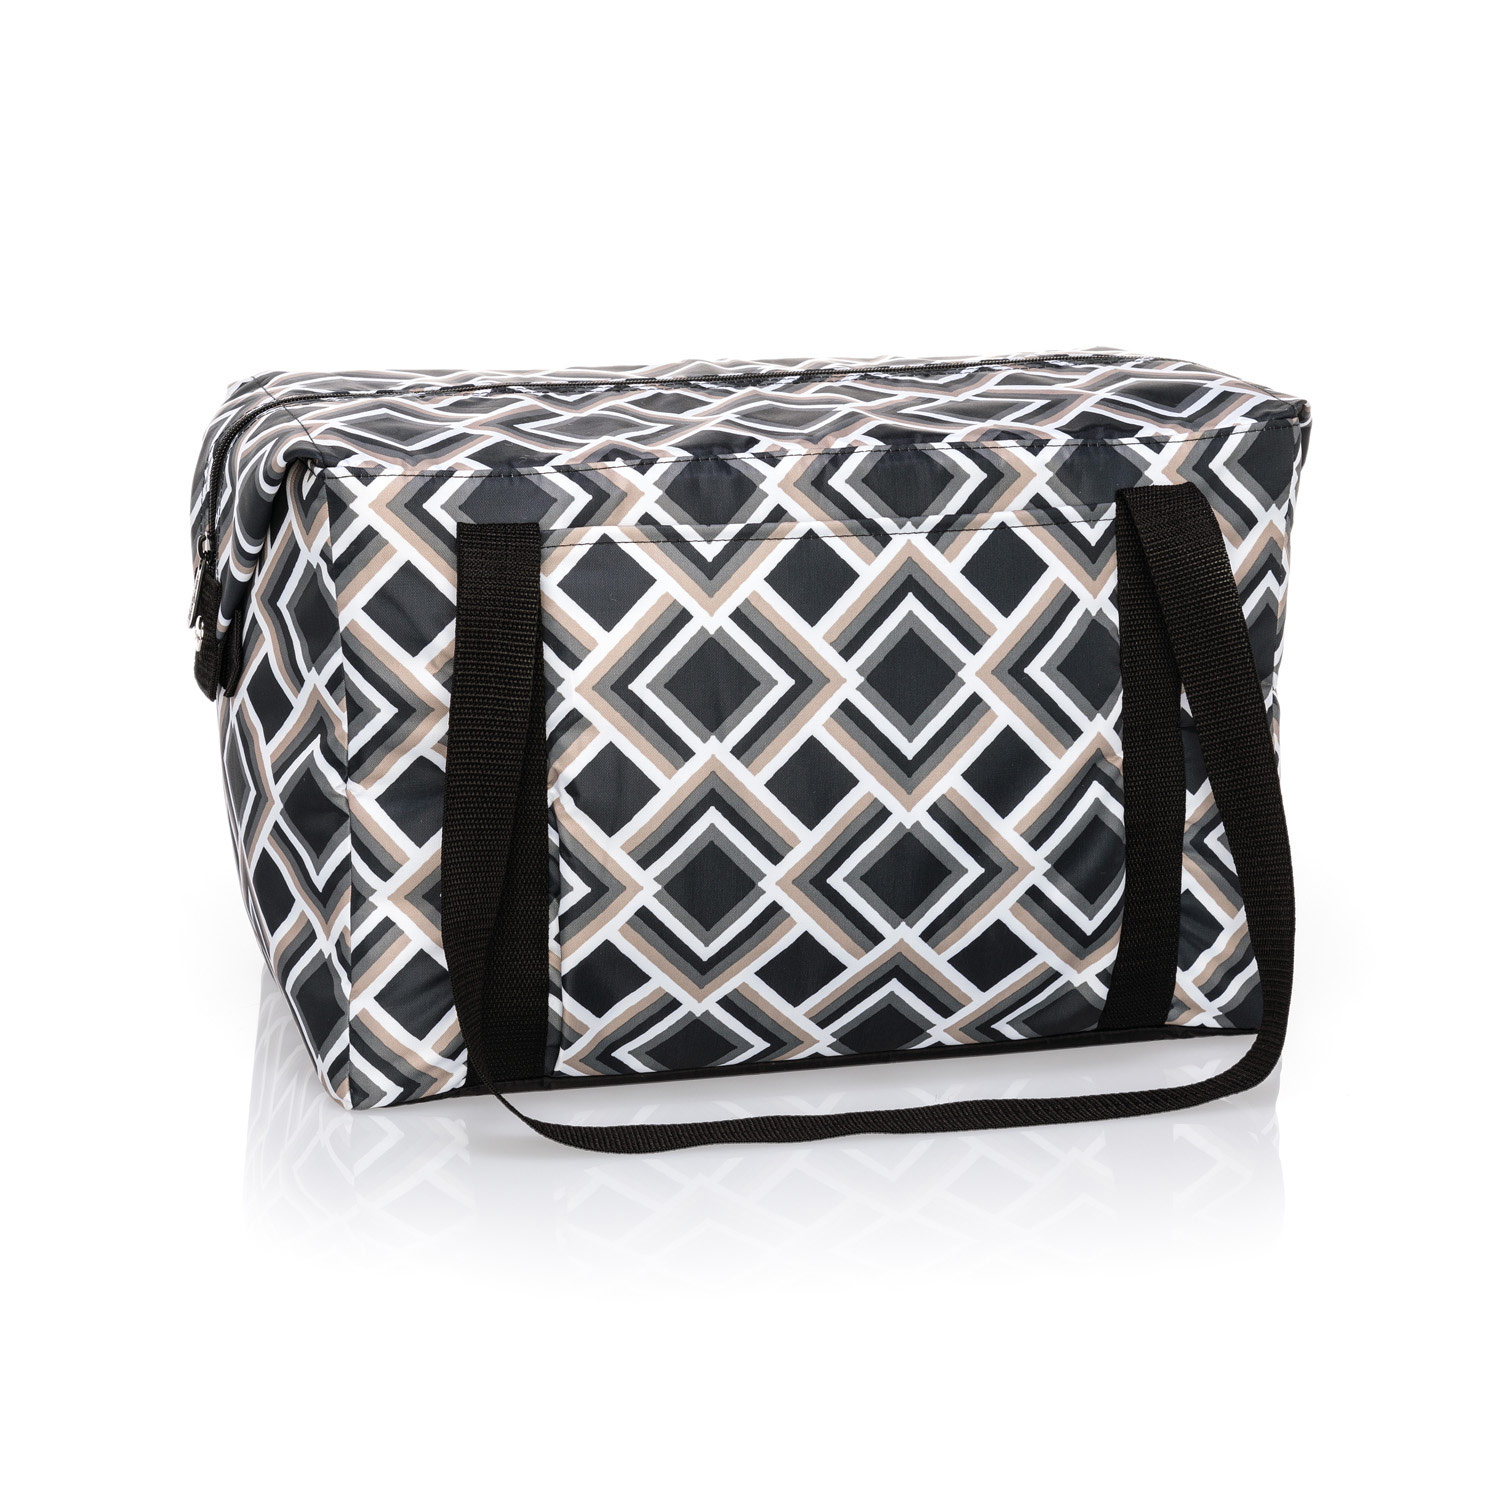 Charcoal Crosshatch - Fresh Market Thermal - Thirty-One Gifts 5efb1b7656c64